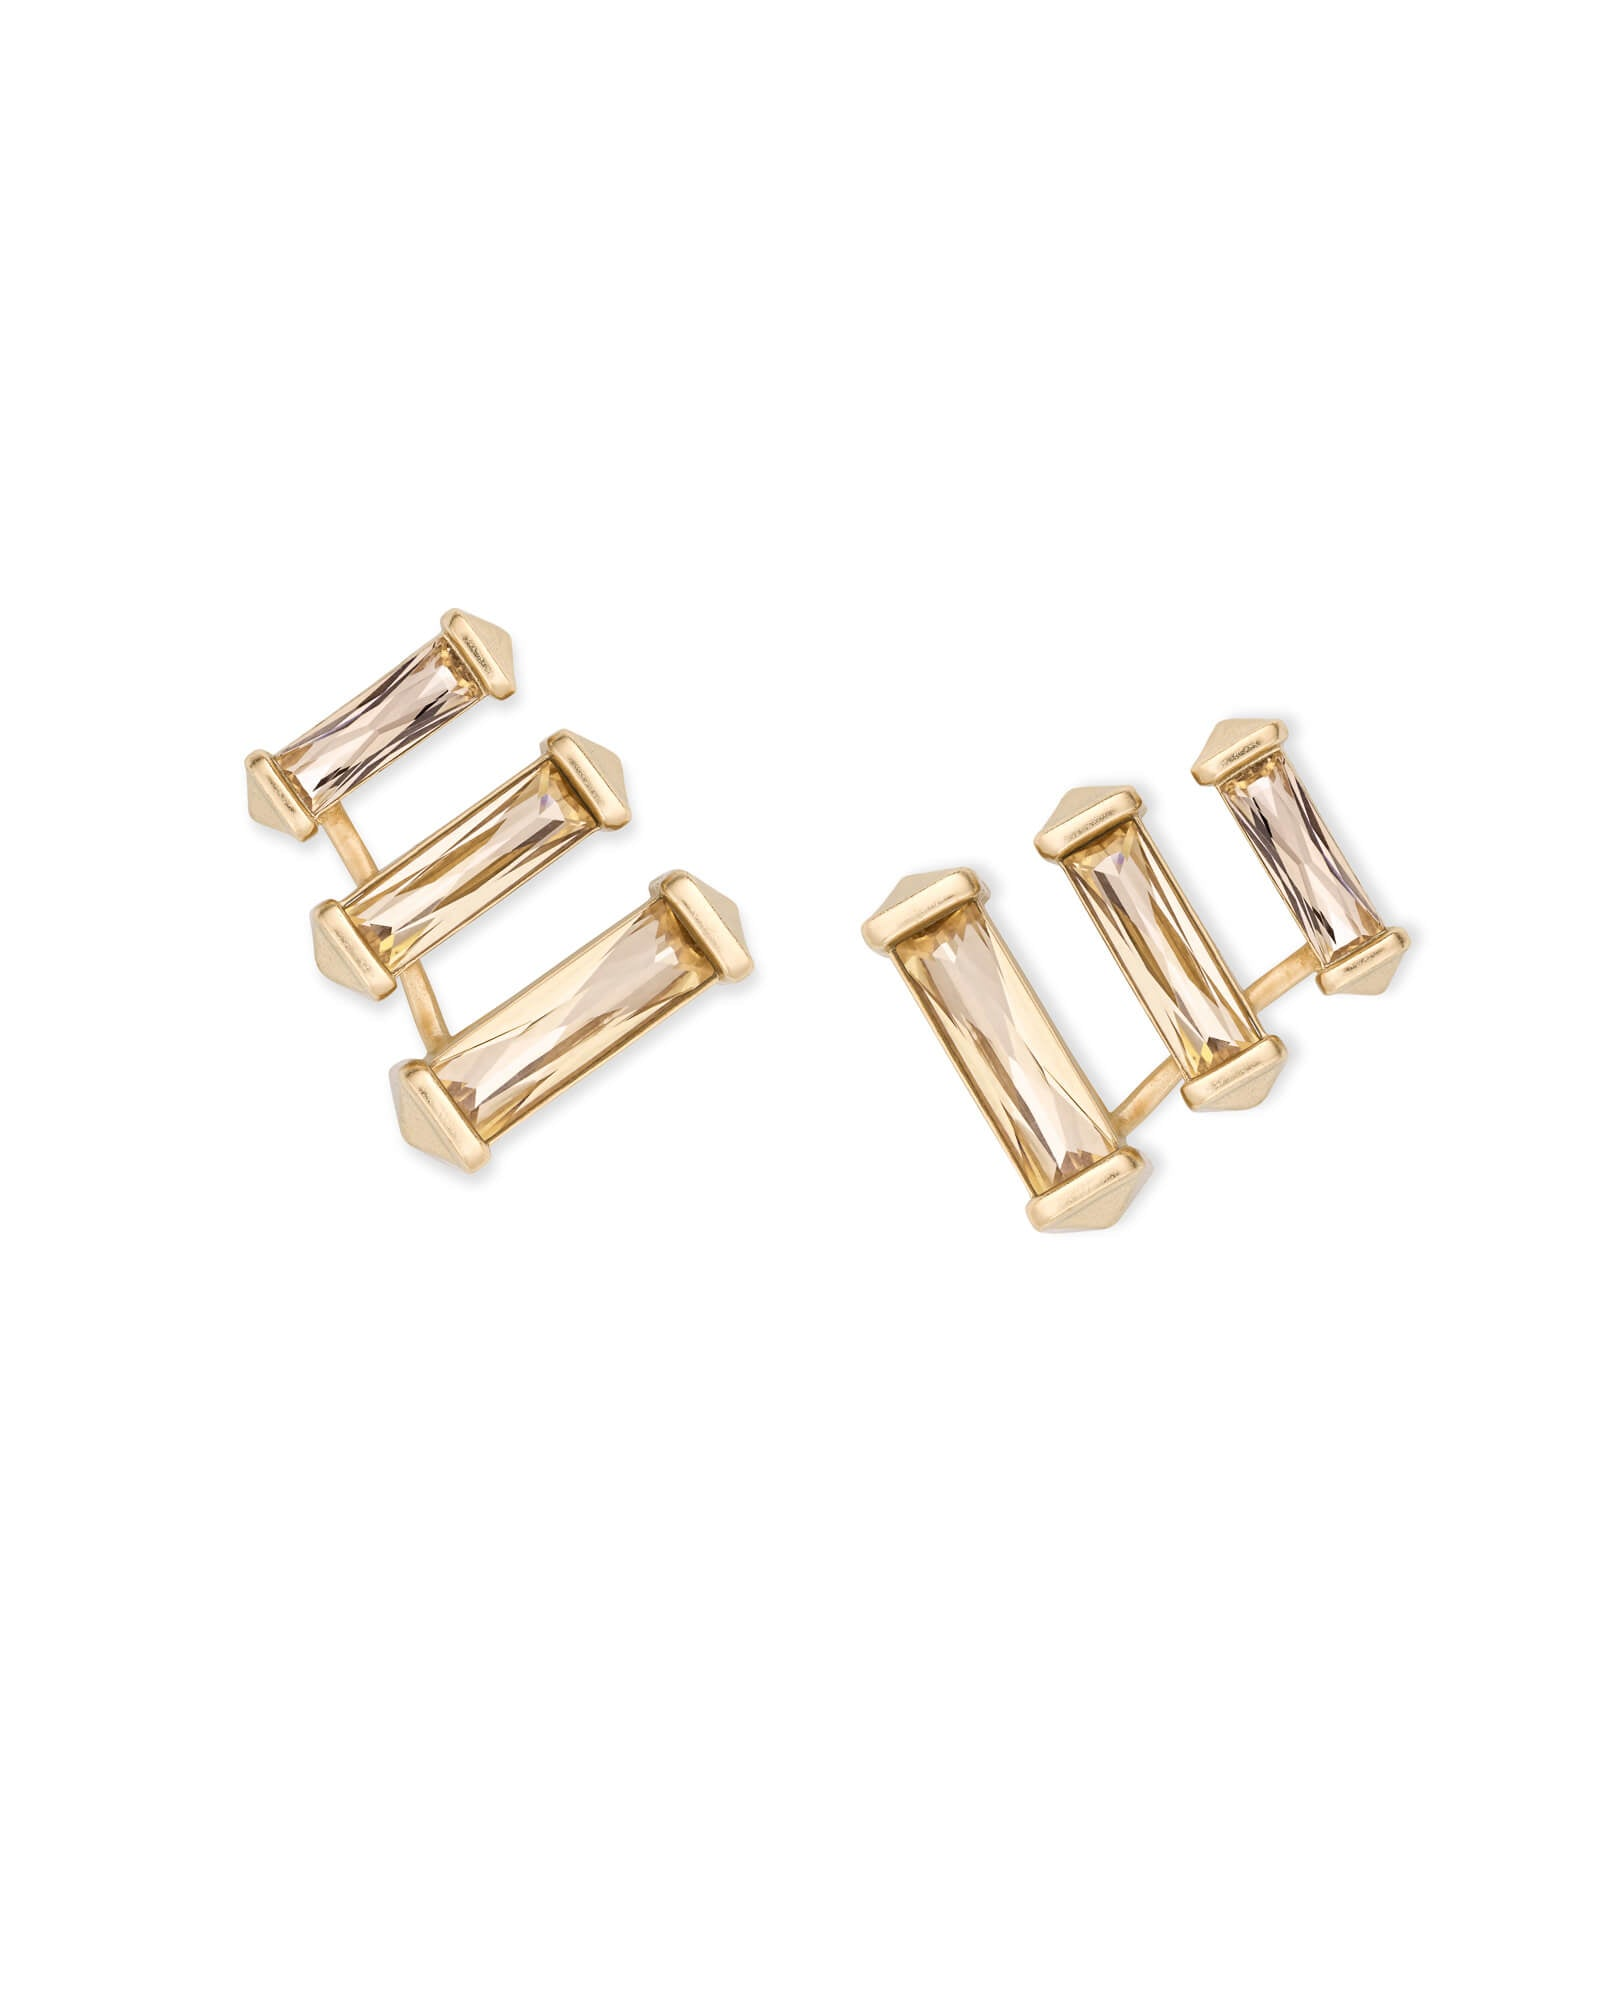 Brooks Gold Ear Climbers in Smoky Crystal